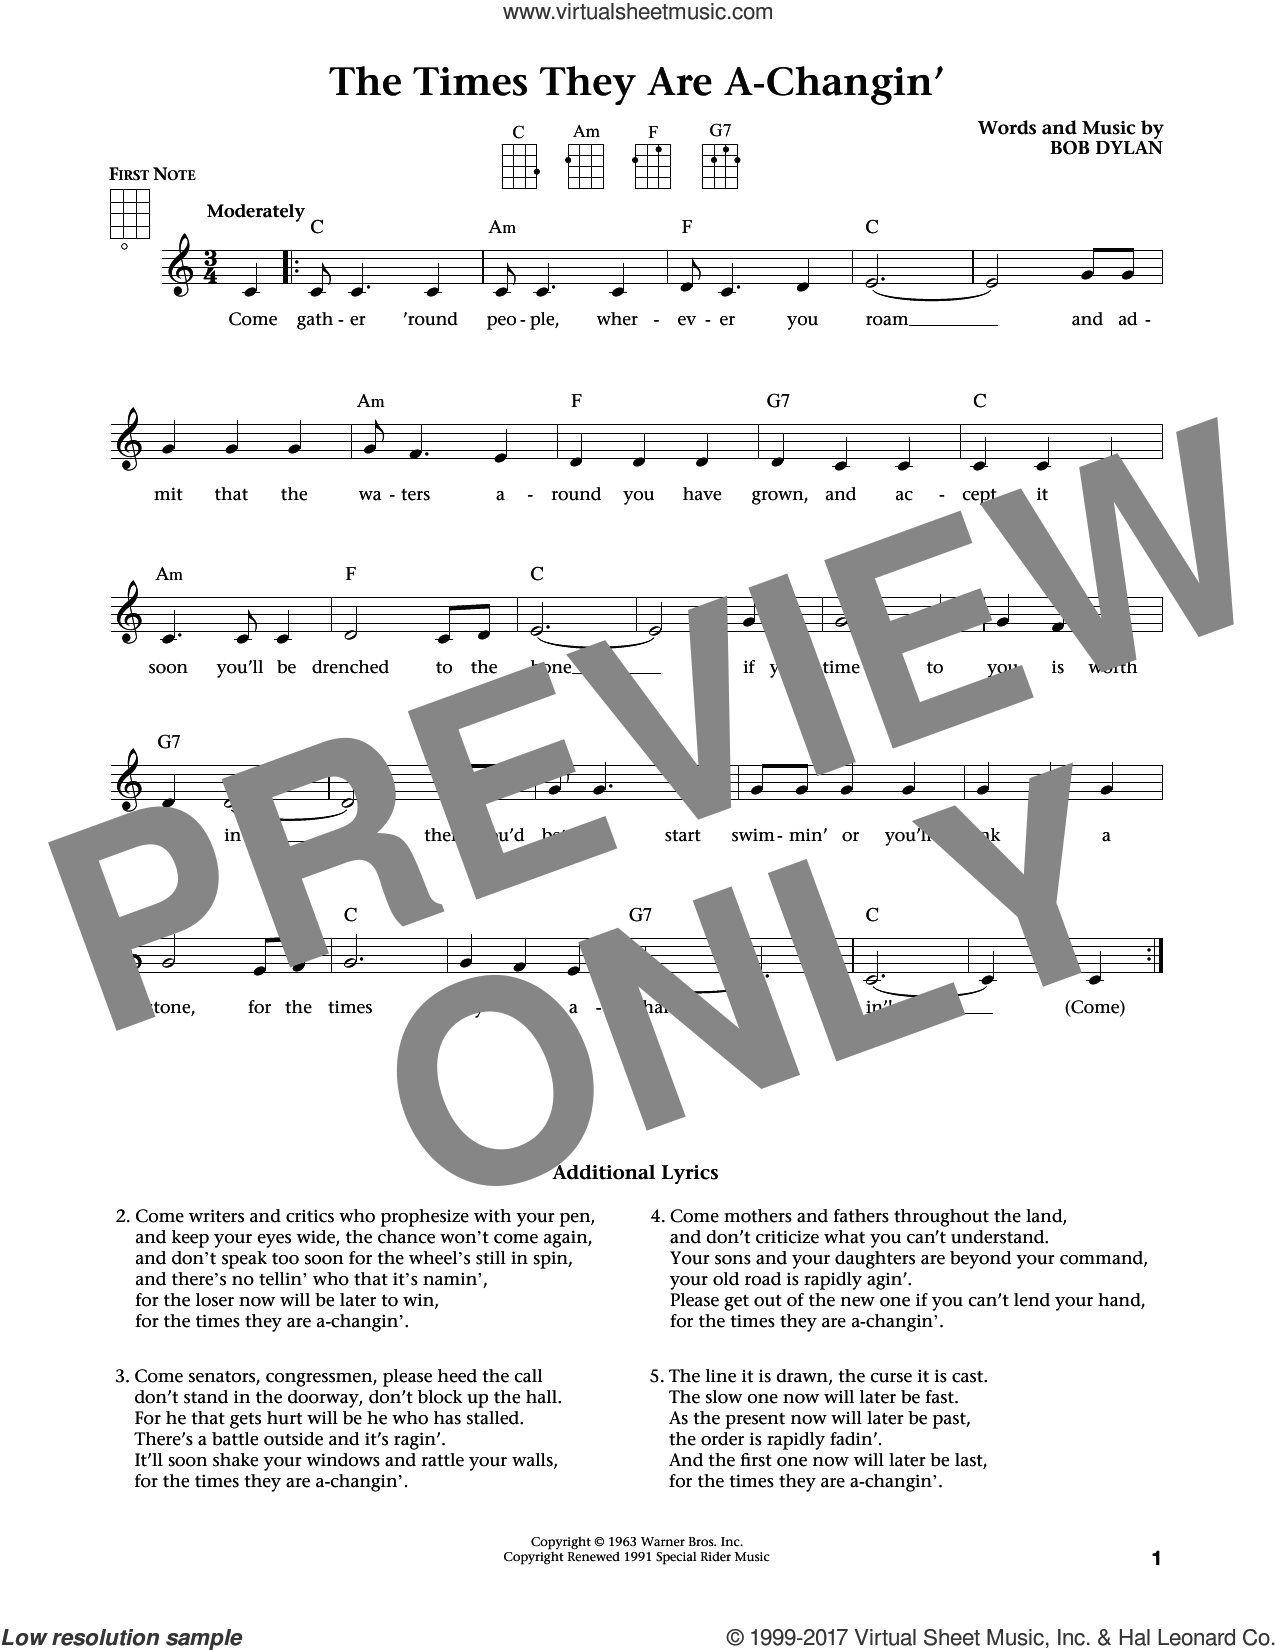 The Times They Are A-Changin' sheet music for ukulele by Bob Dylan, Jim Beloff, Liz Beloff and Peter, Paul & Mary, intermediate skill level